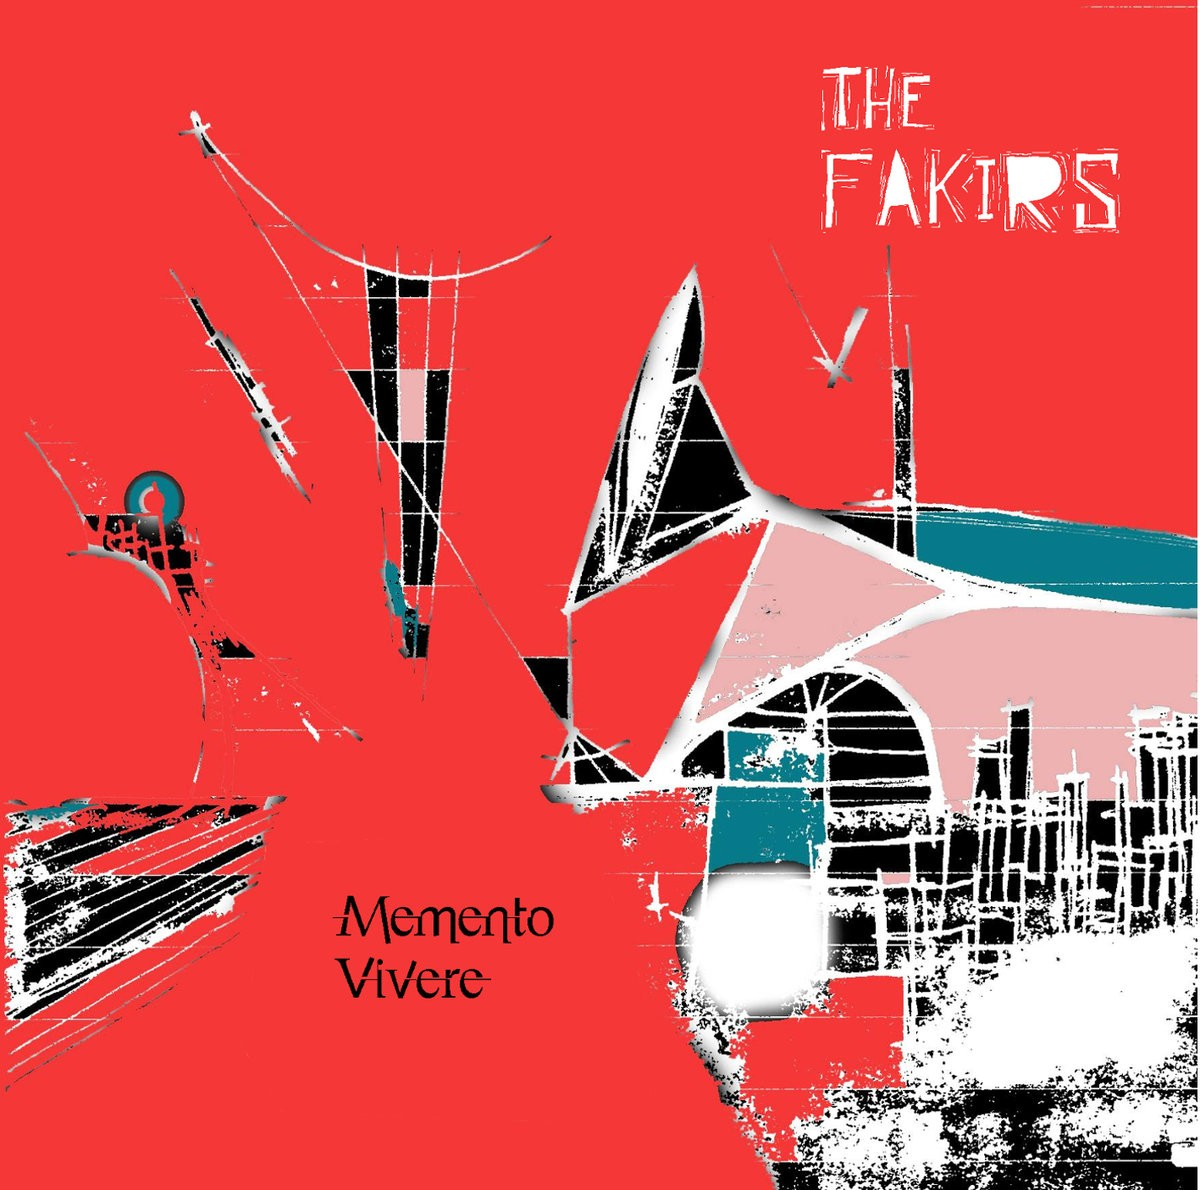 the-fakirs-memento-vivere